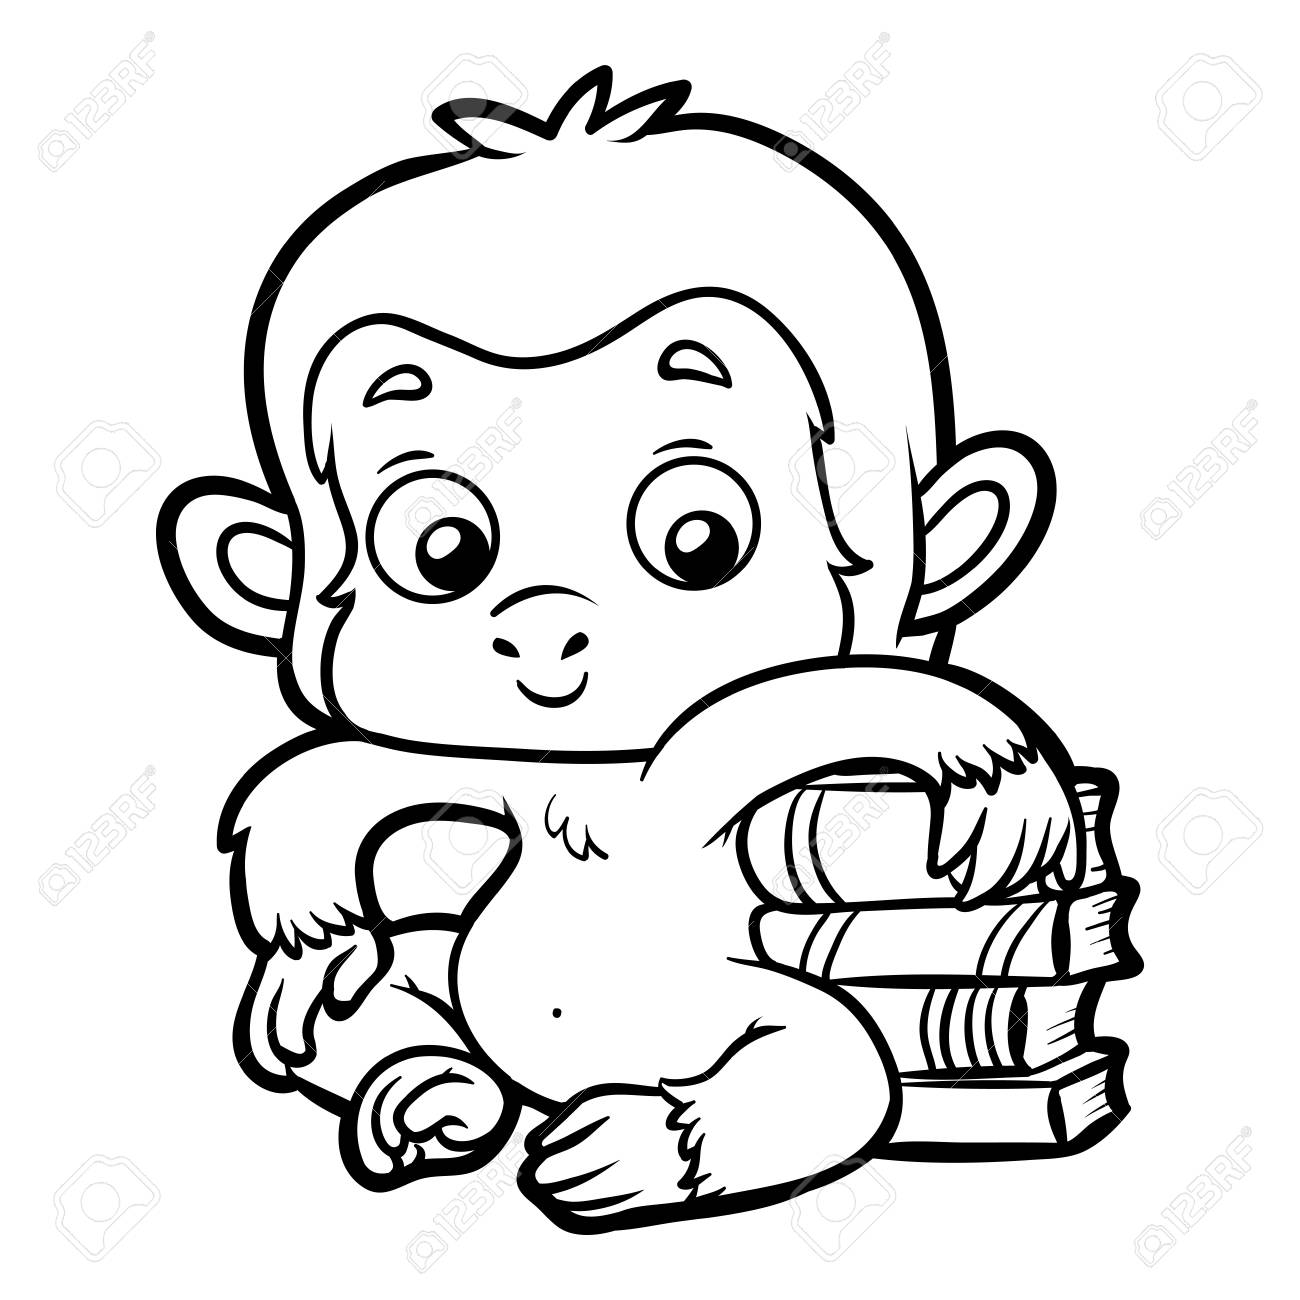 Coloring Book For Children, Monkey And Books. Royalty Free Cliparts ...